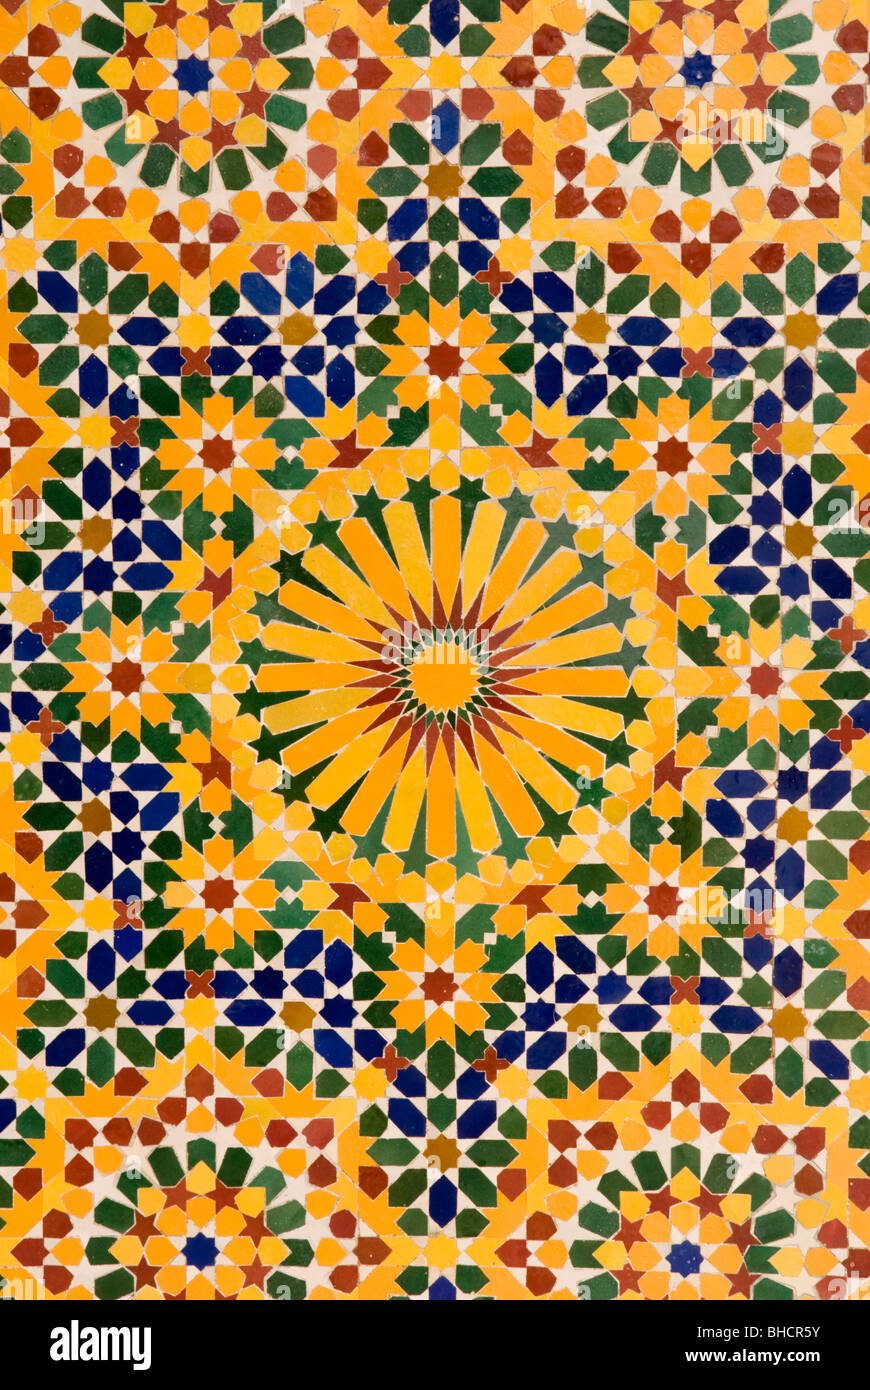 https www alamy com stock photo close up of mosaic tile patterns hassan ii mosque casablanca morocco 27941143 html